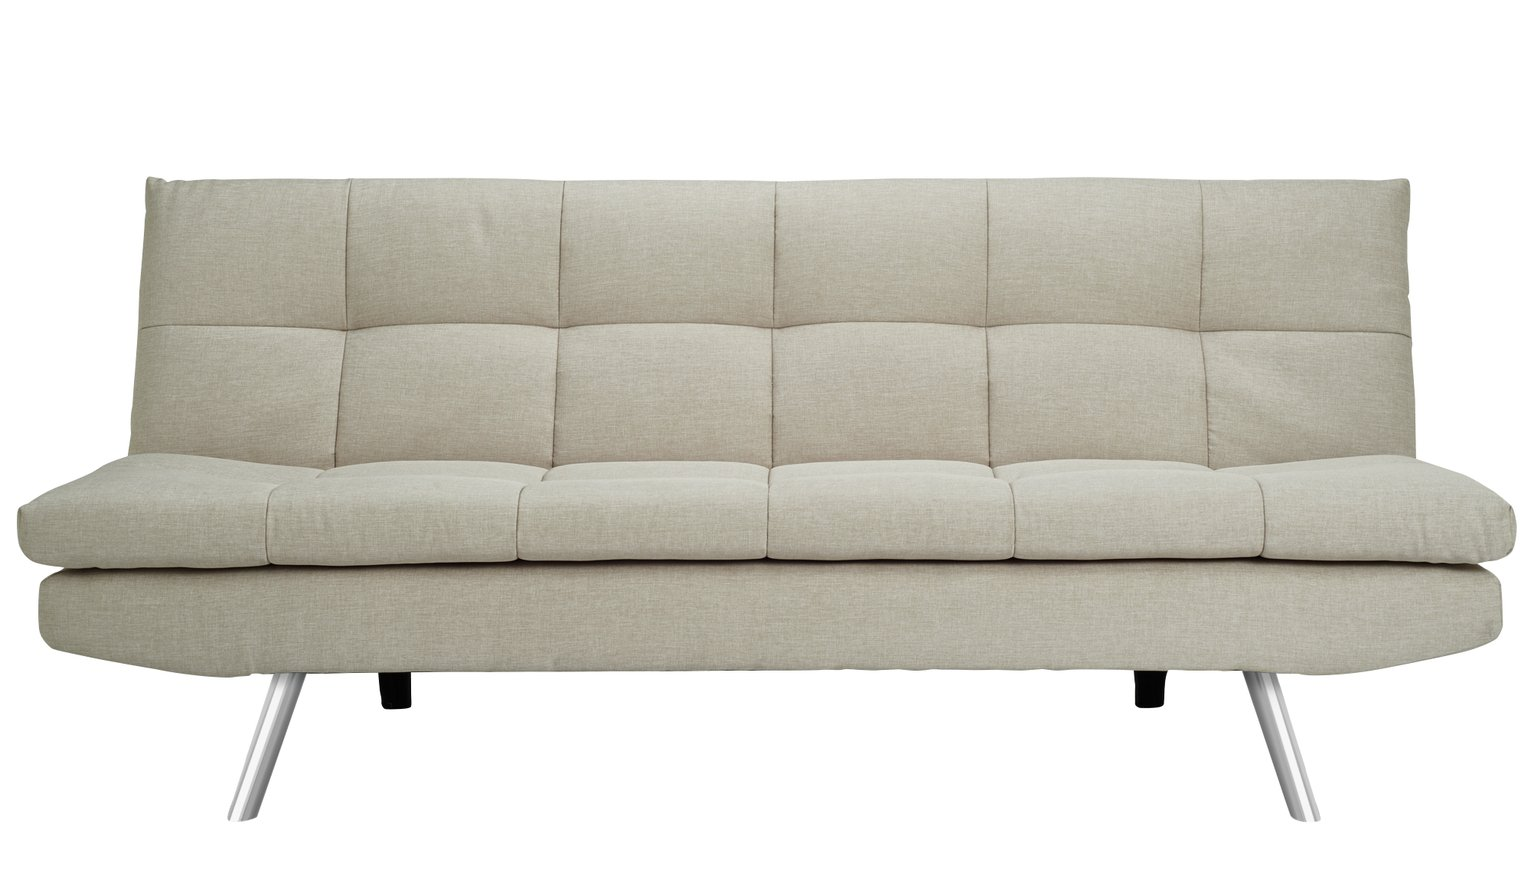 Buy Argos Home Nolan 3 Seater Fabric Sofa Bed - Natural | Sofa beds